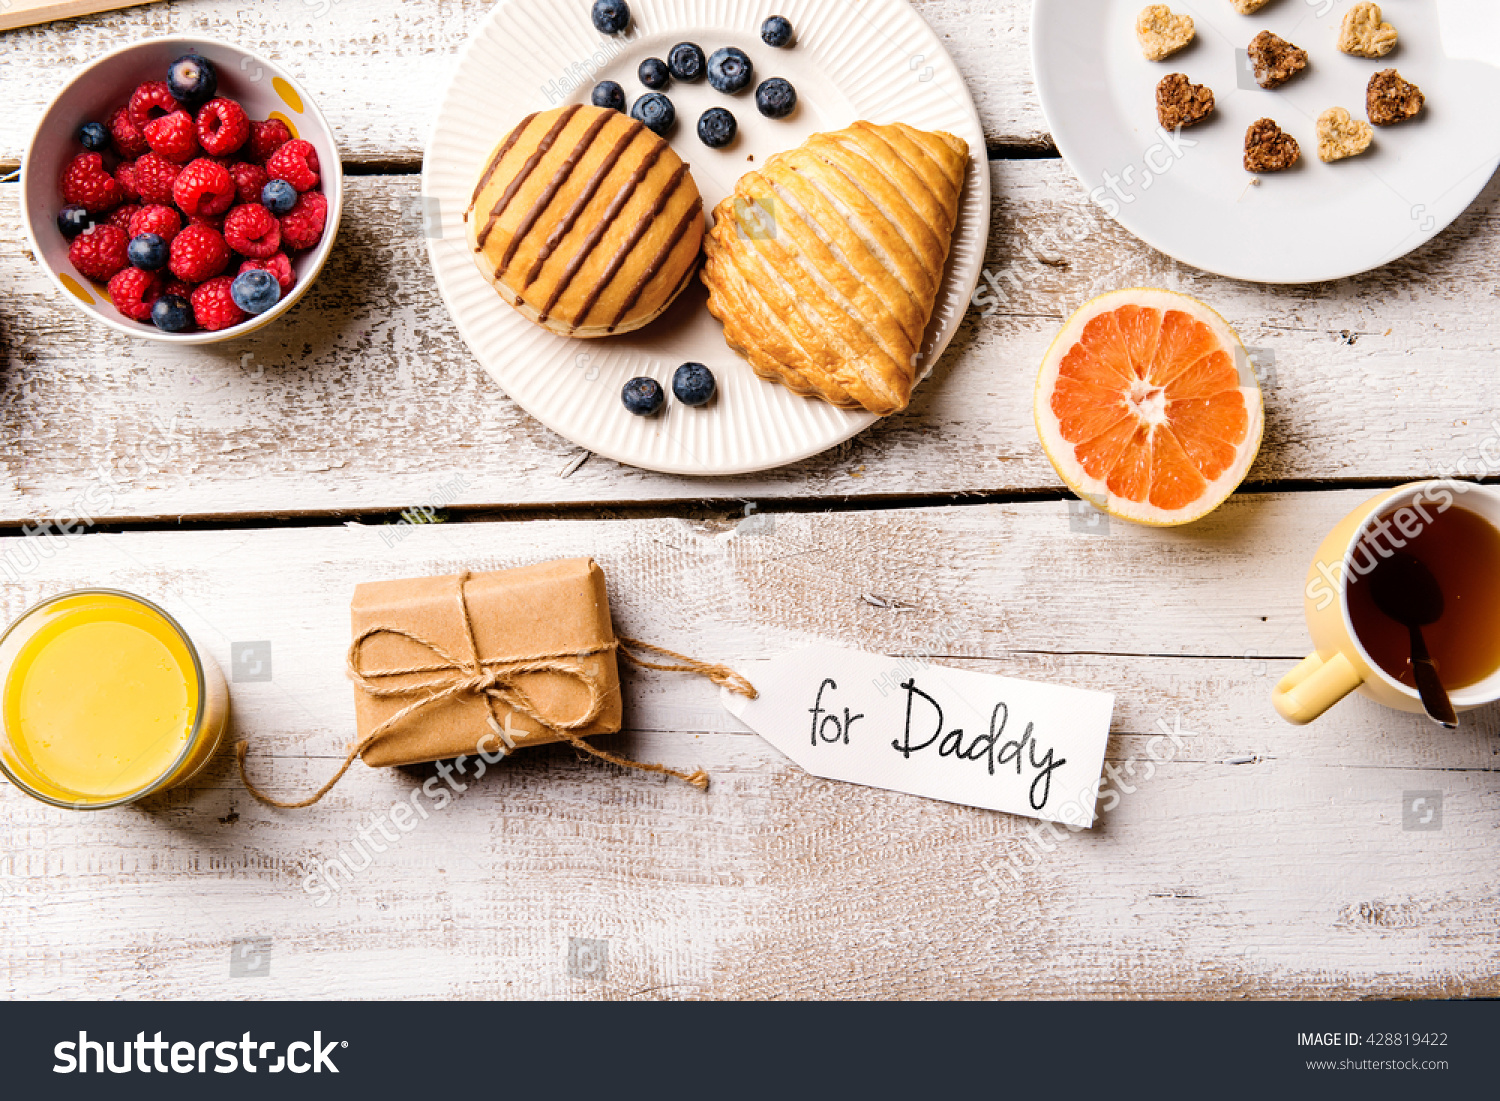 Fathers day composition Breakfast meal Gift with For Daddy tag